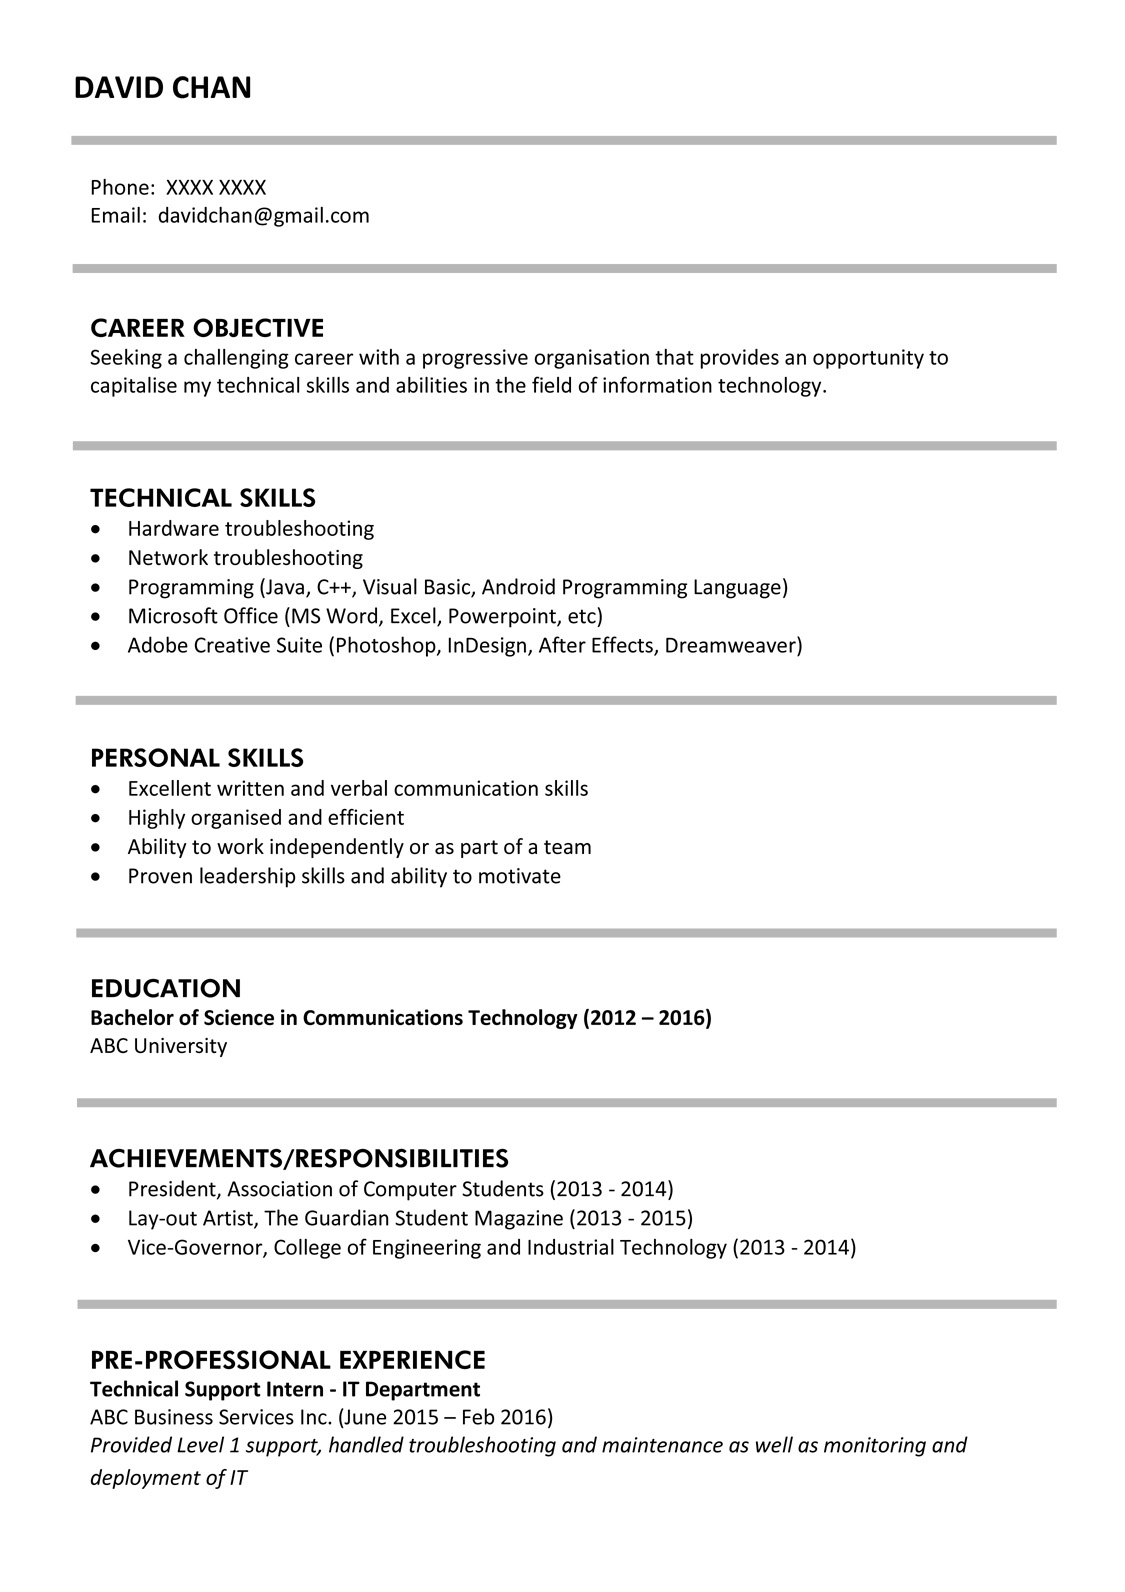 sample resume format 1 - Field Support Engineer Sample Resume